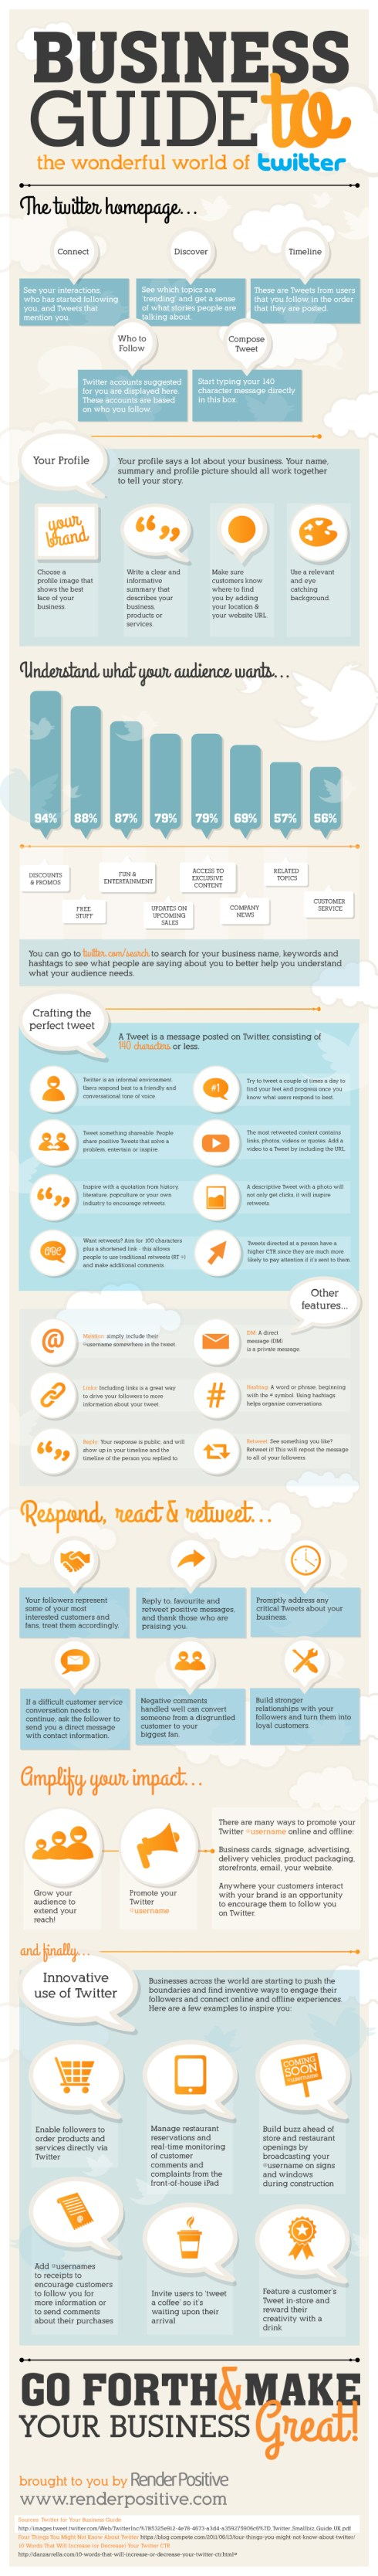 new-business-guide-to-twitter-infographic